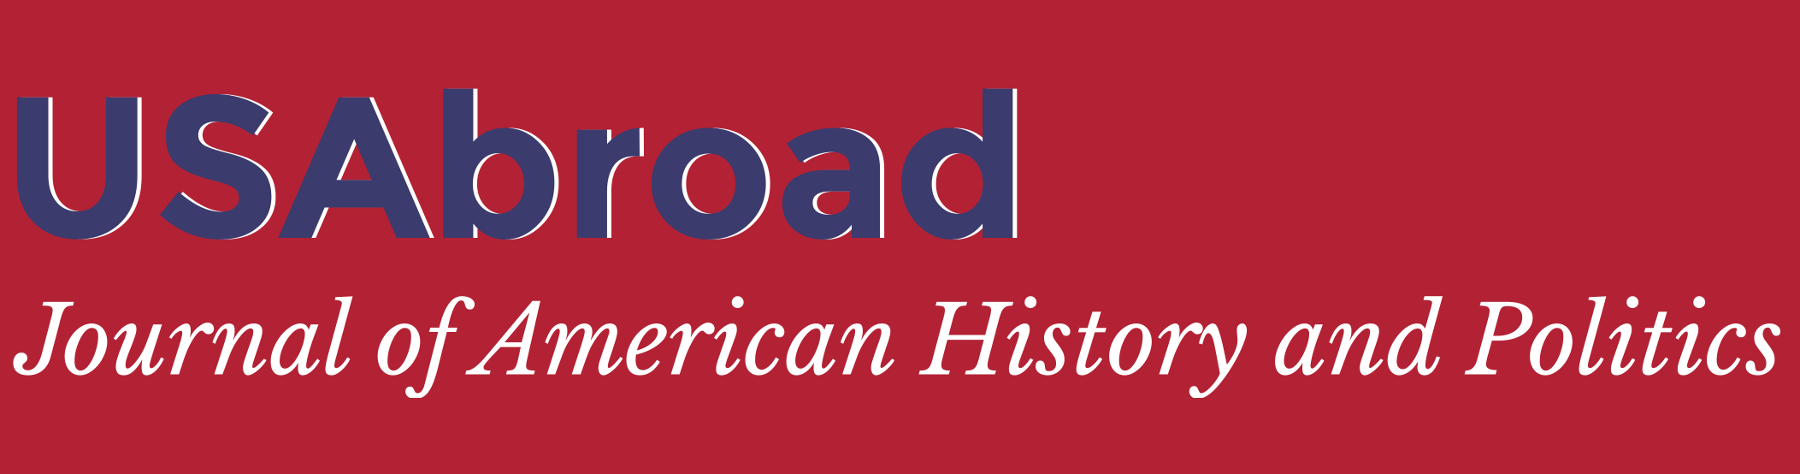 USAbroad - Journal of American History and Politics